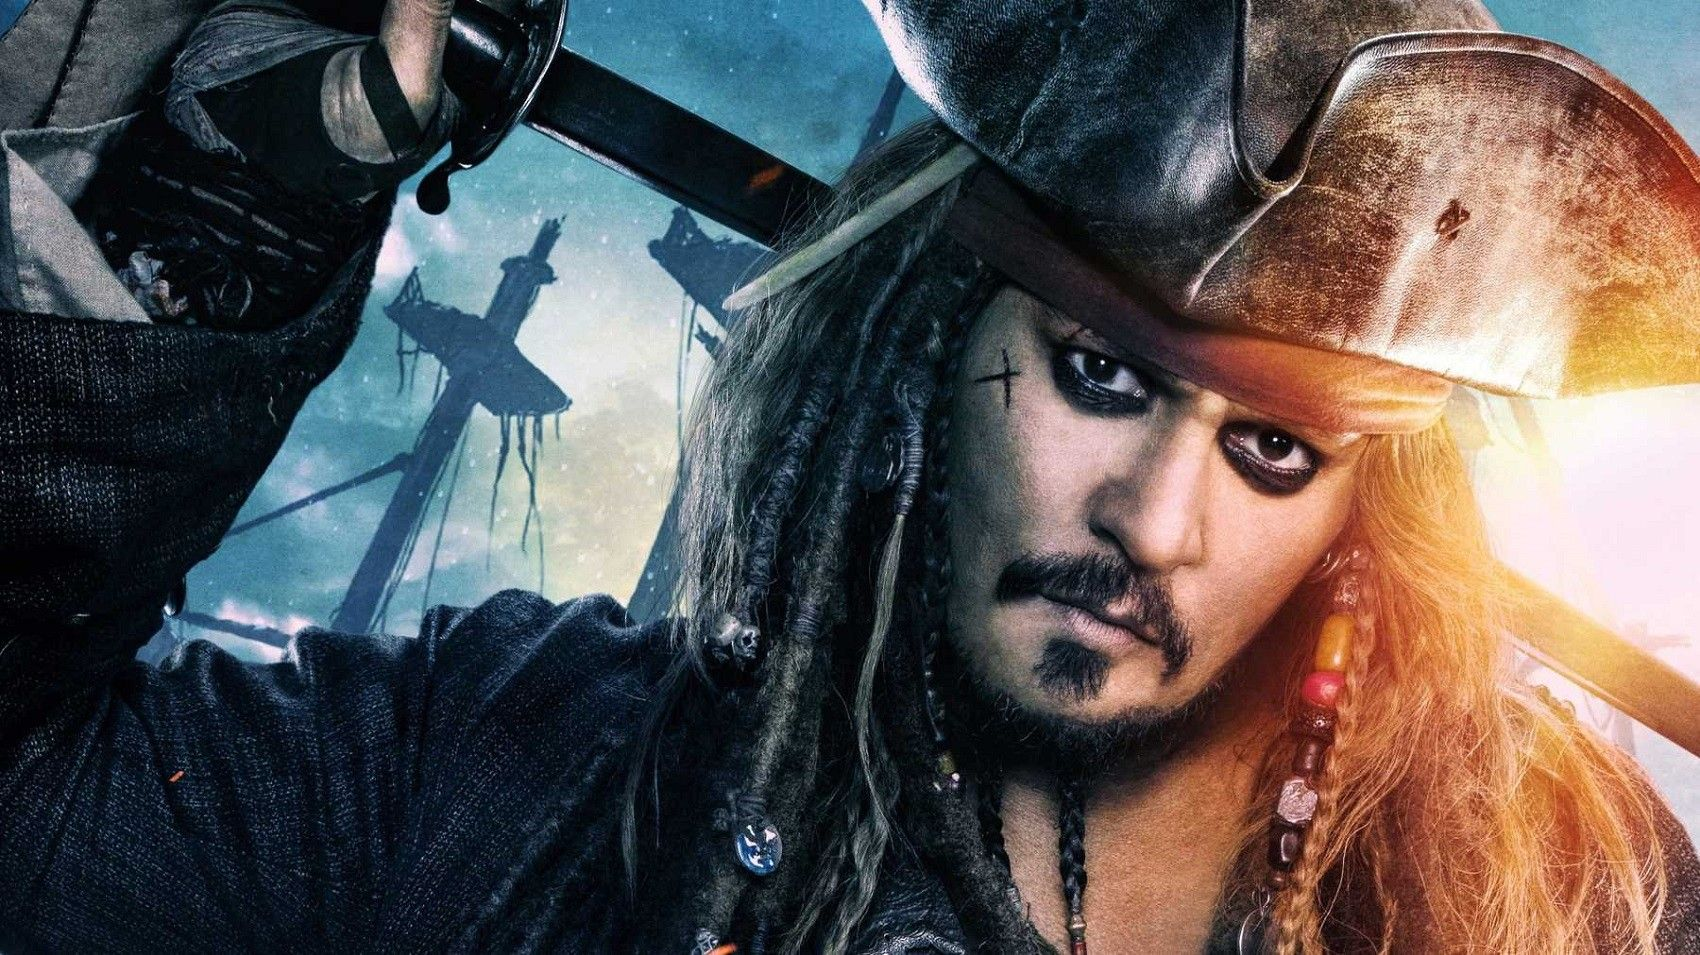 According To Sources The Pirate Of The Caribbean 6 Movie Is Happening With Or Without Johnny Depp S Johnny Depp Captain Jack Sparrow Pirates Of The Caribbean